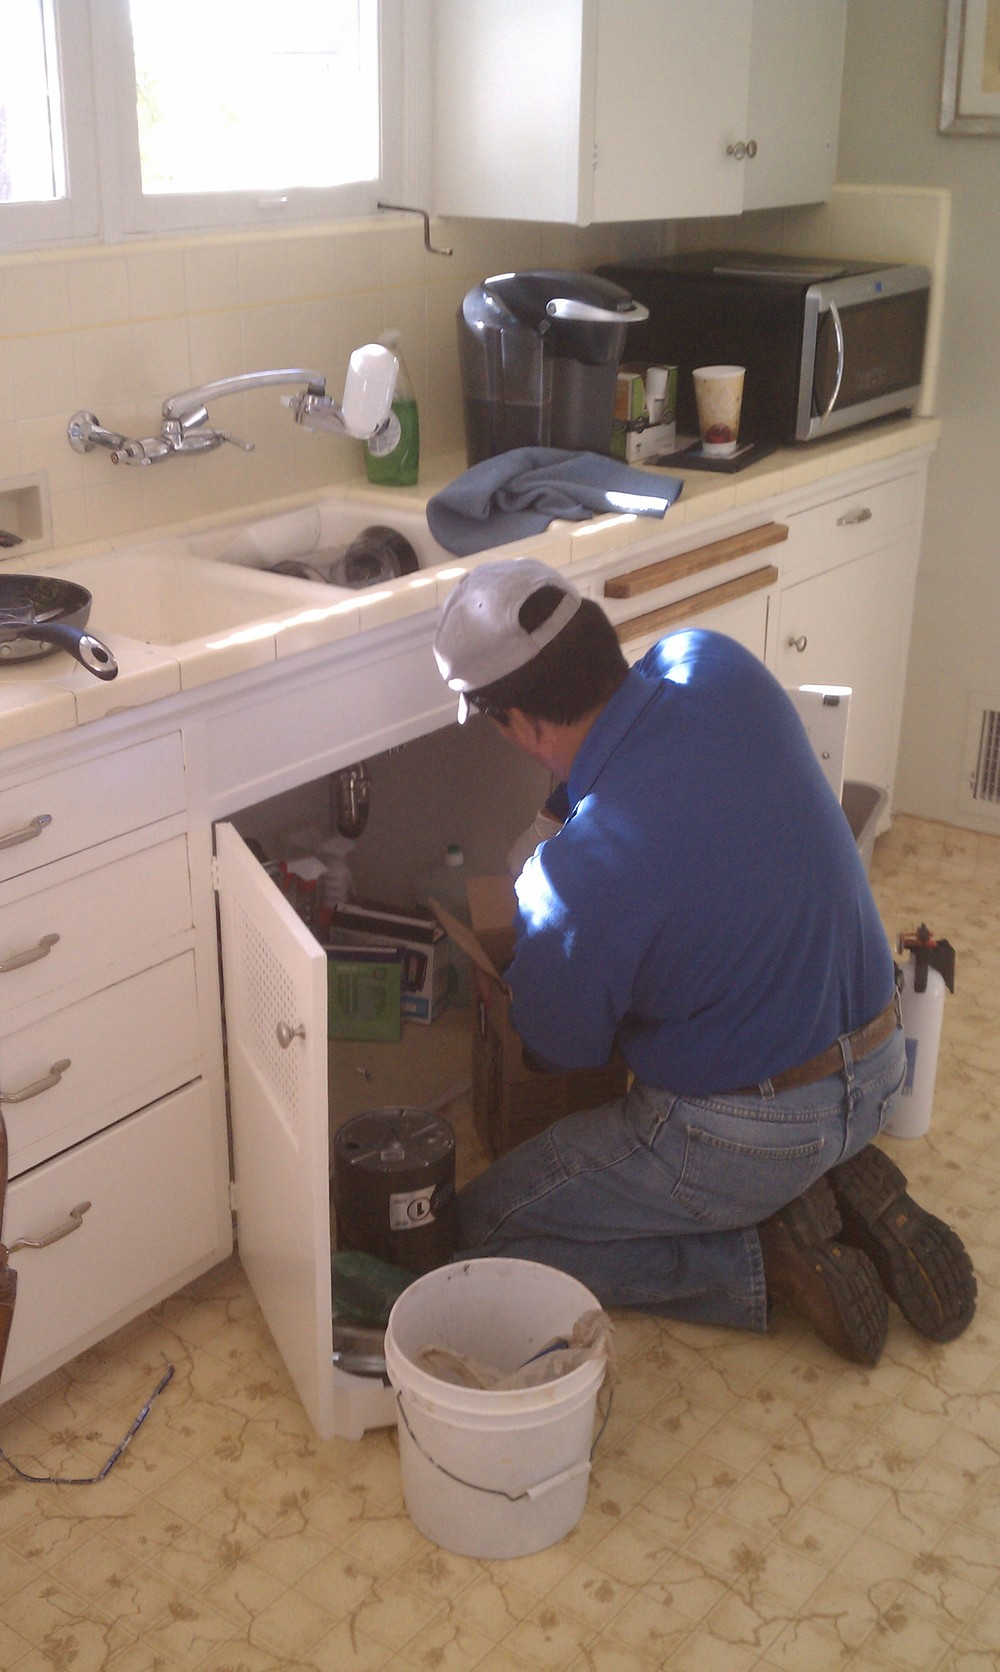 Fixing a garbage disposal and leaky pipes under a sink